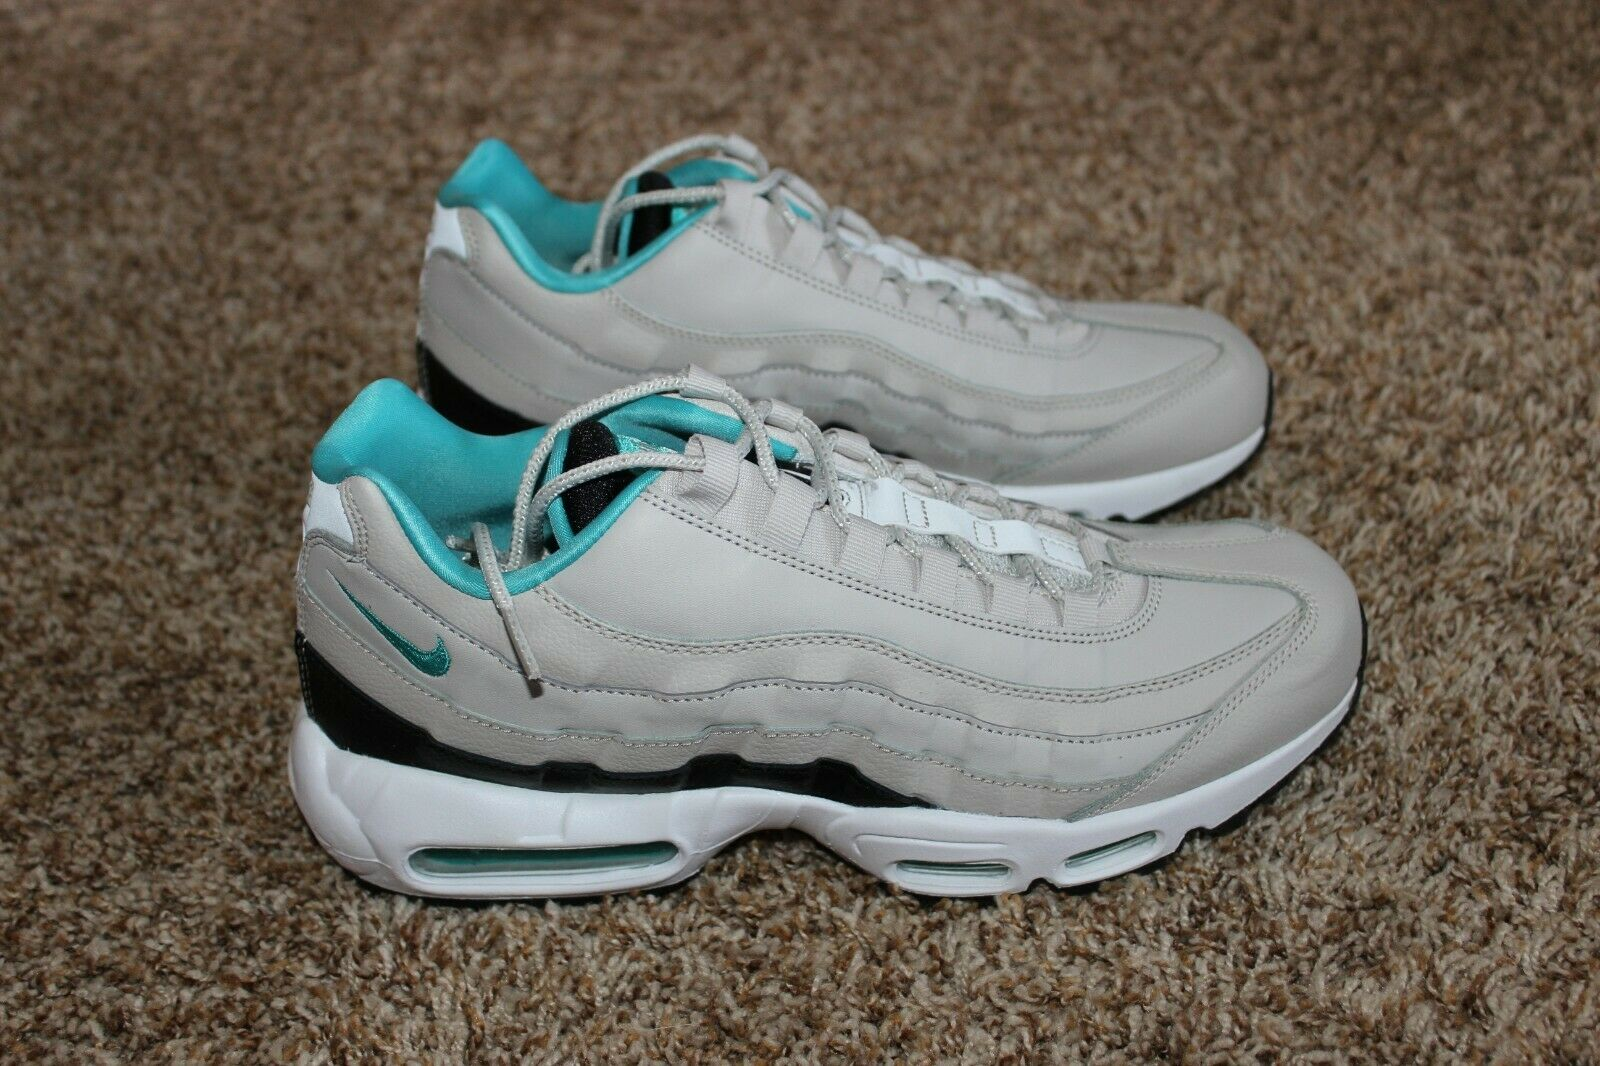 Mens Nike Air Max 95 Essential shoes Sz 11 Light Bone  160 NIB 749766 027 Turq .